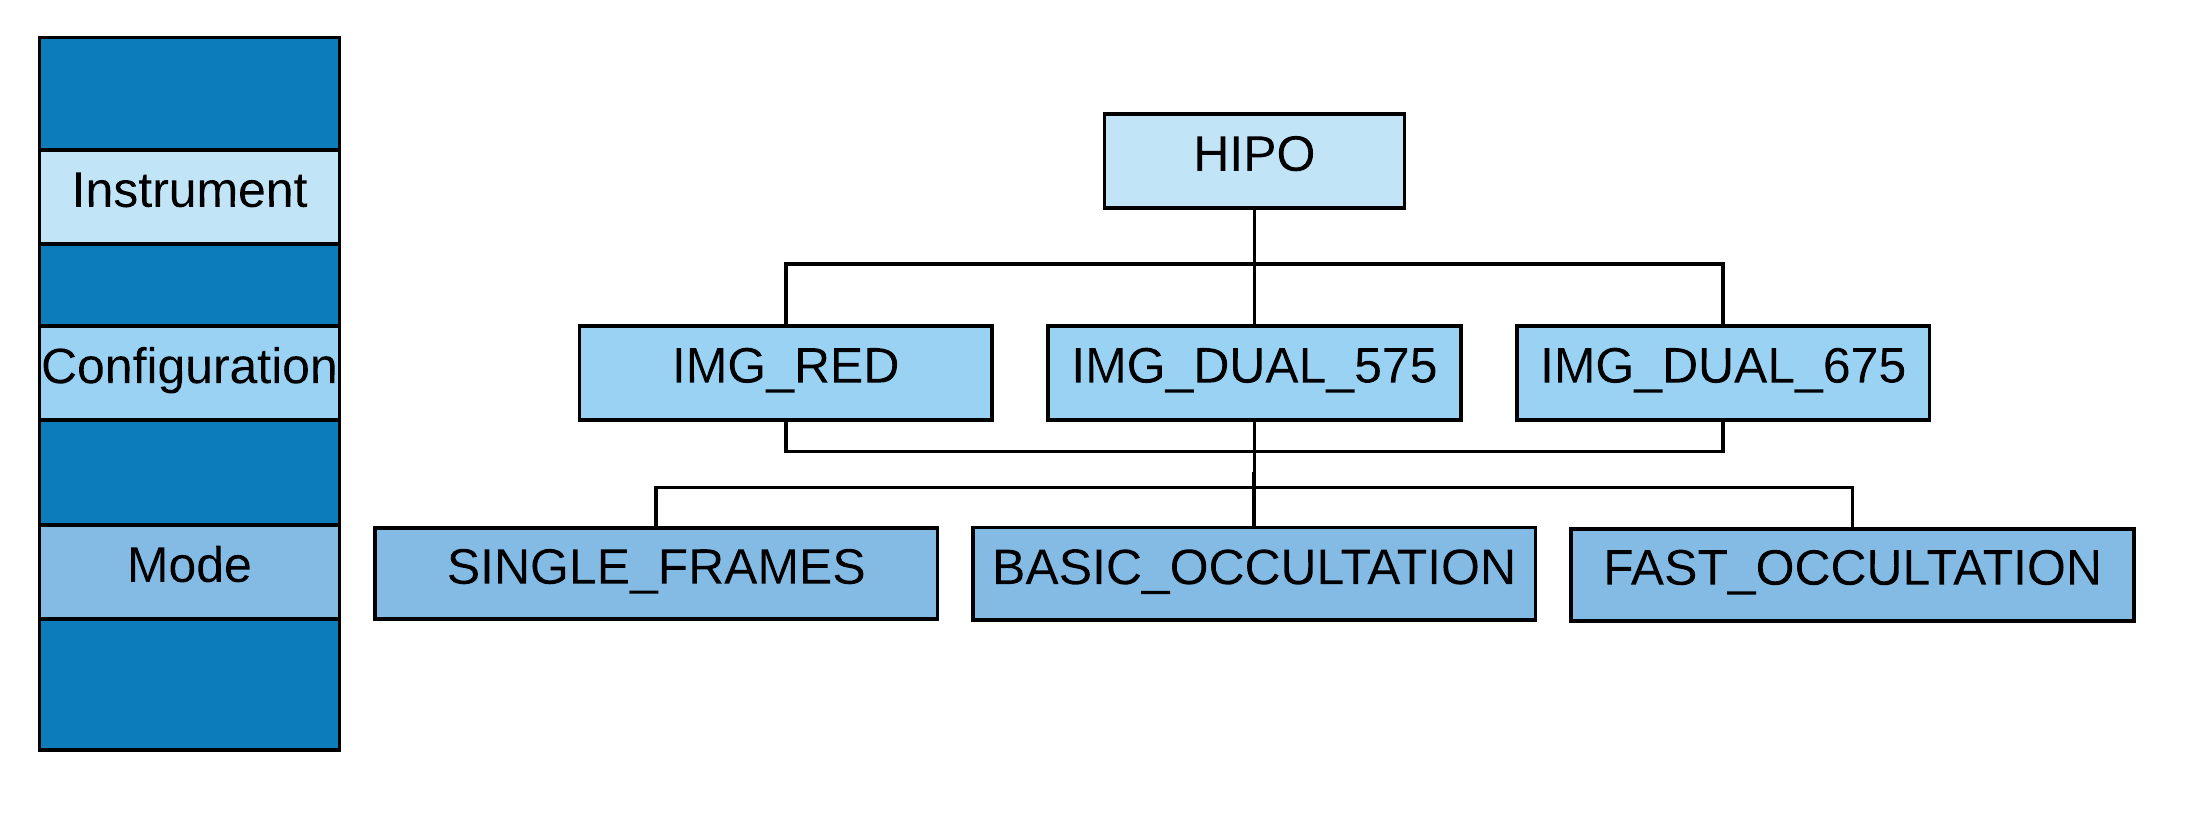 HIPO configuration and mode flowchart diagram